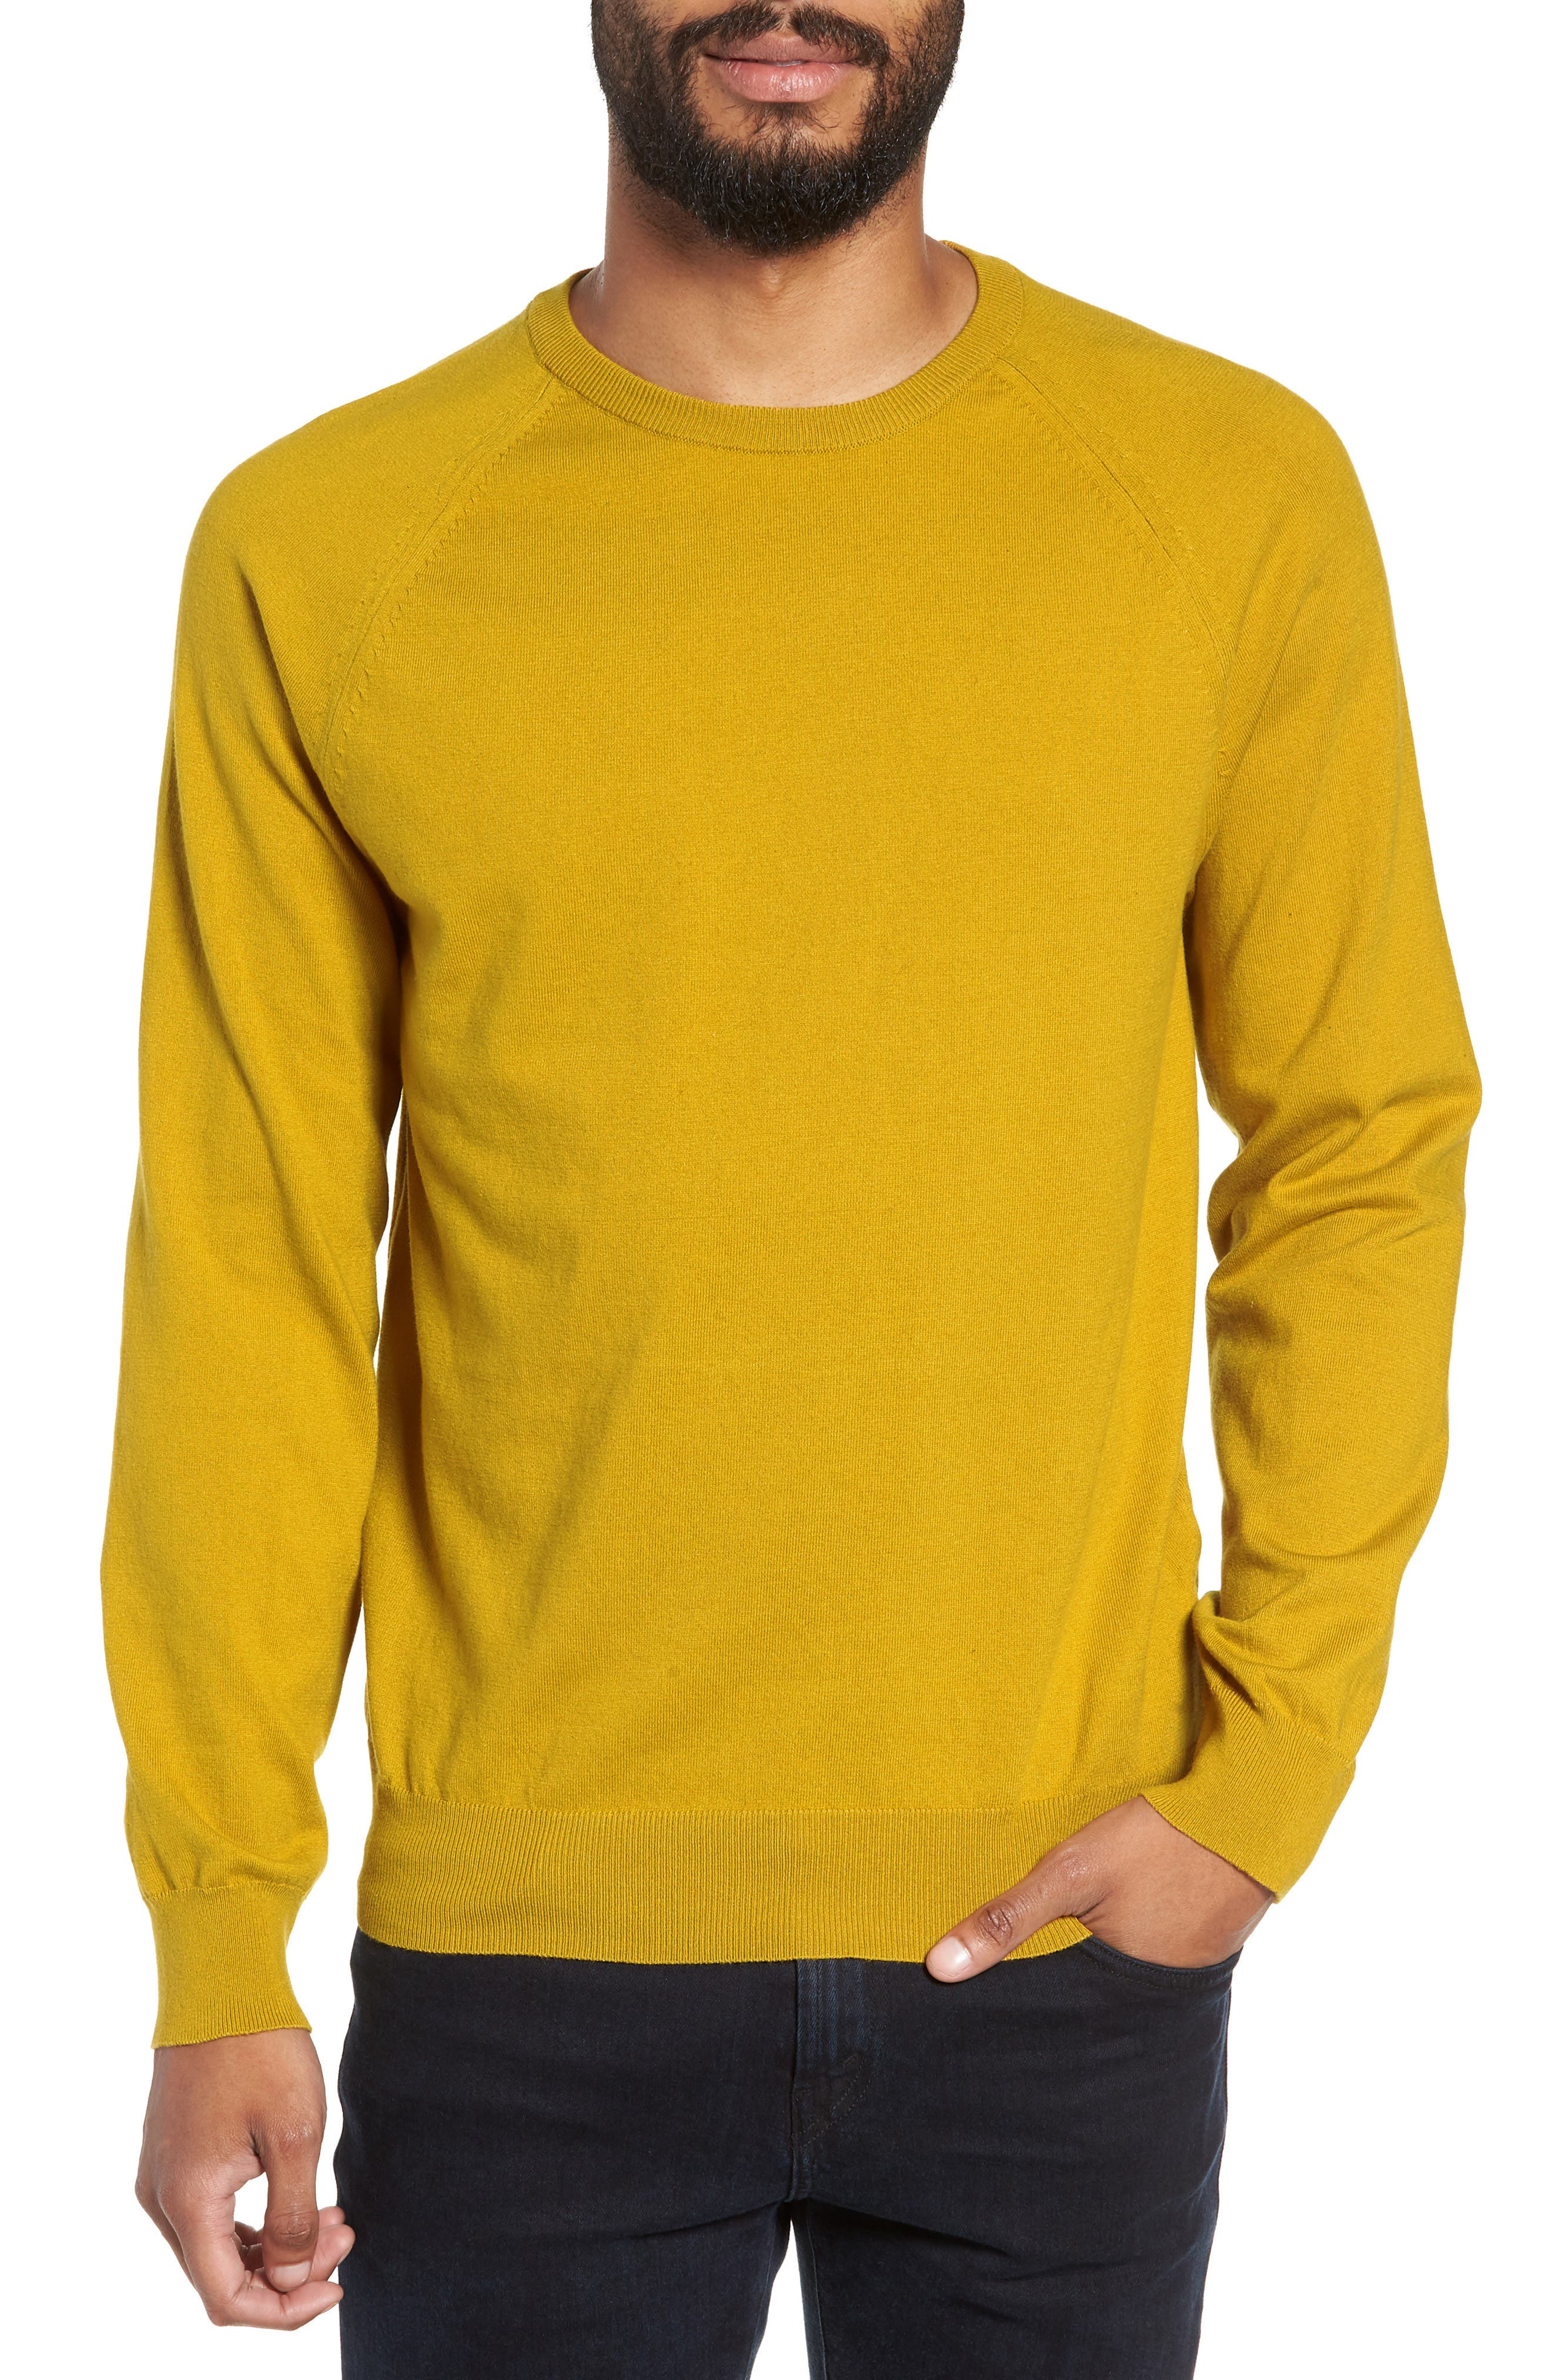 French Connection Regular Fit Crewneck Sweater, Yellow